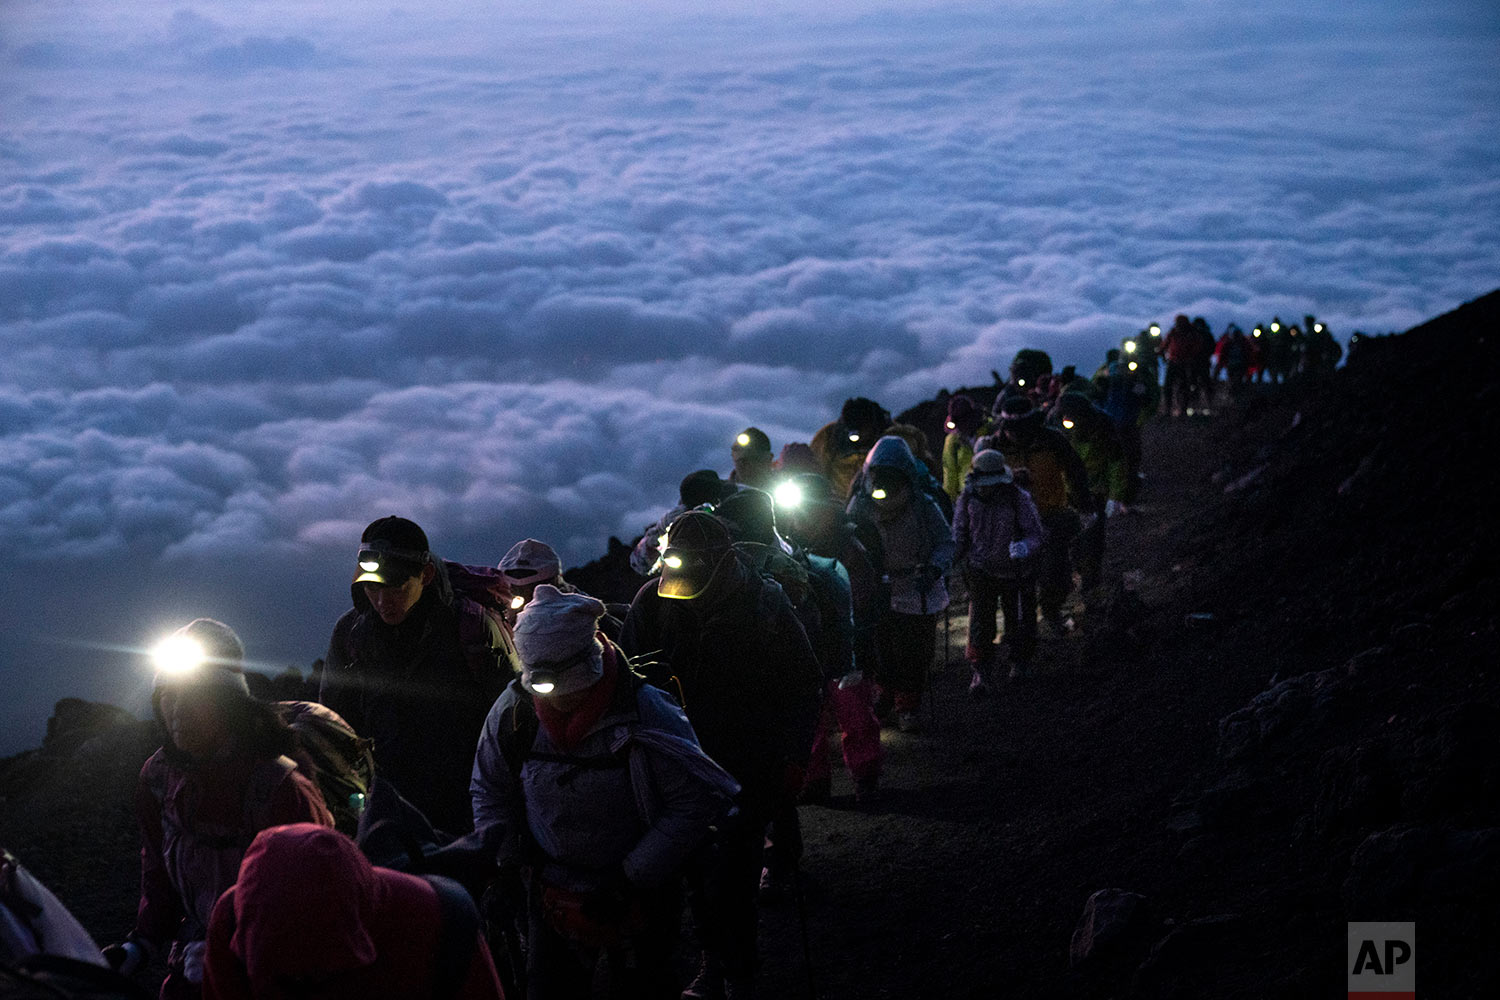 A group of hikers climb to the top of Mount Fuji just before sunrise as clouds hang below the summit Aug. 27, 2019, in Japan. (AP Photo/Jae C. Hong)